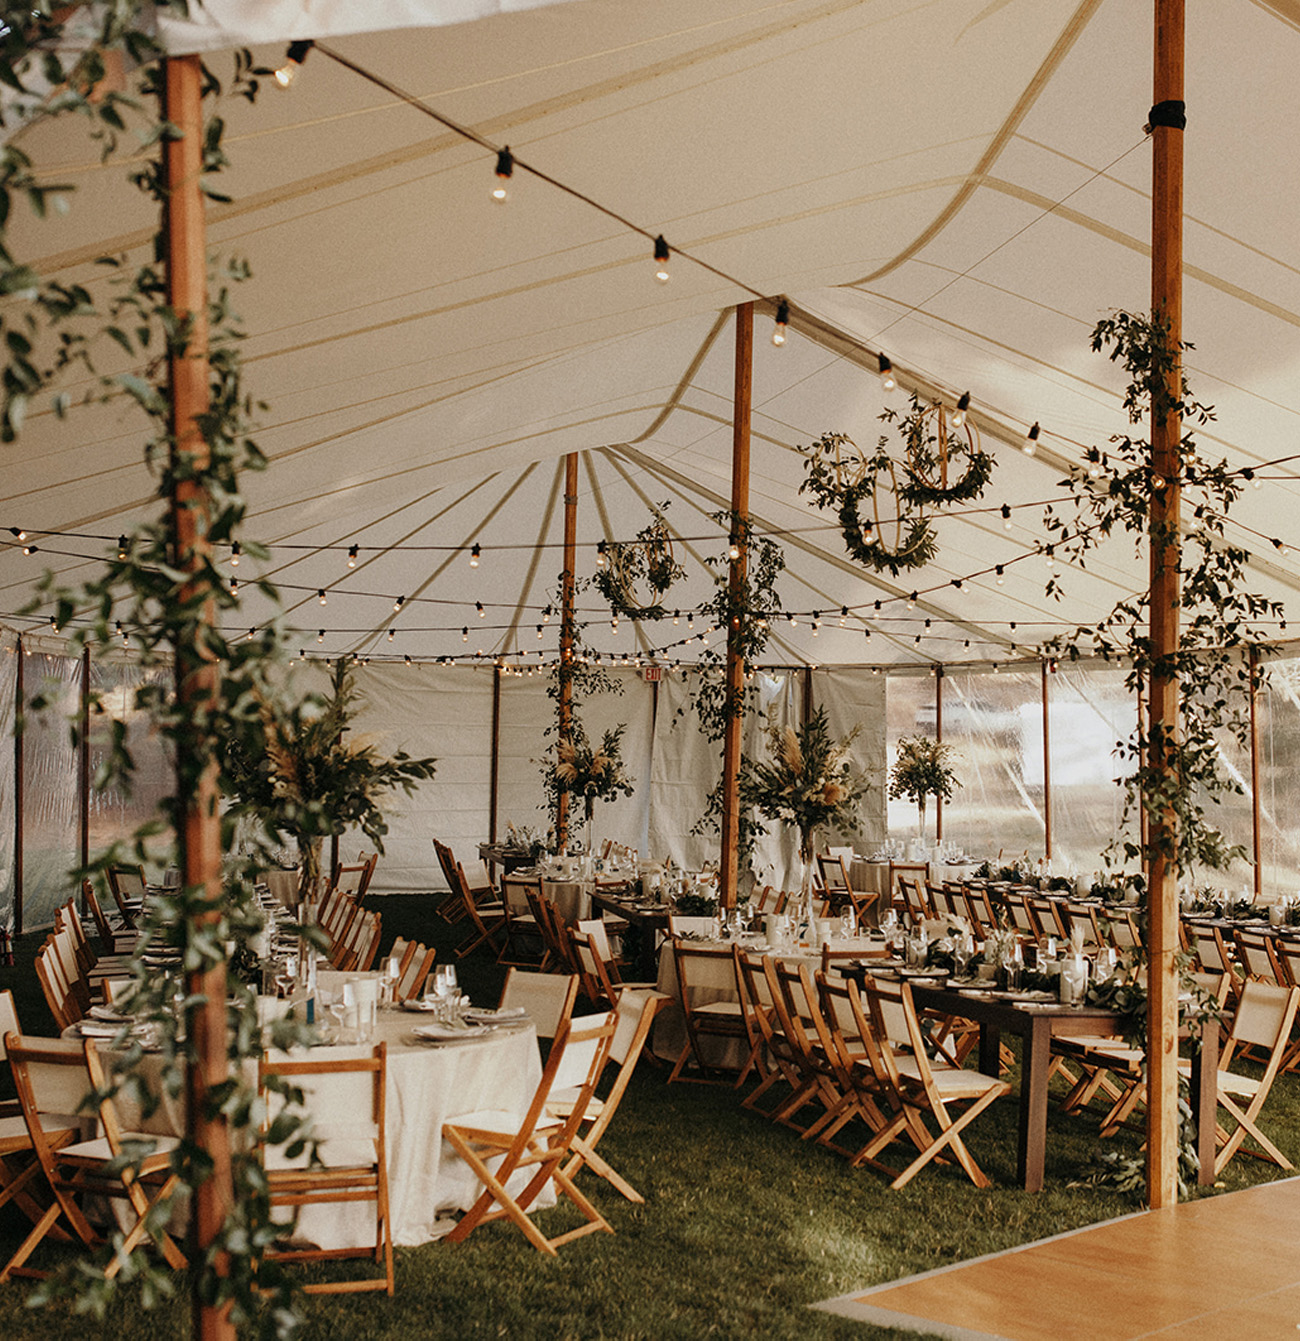 Rustic Wedding Tent with Tons of Greenery